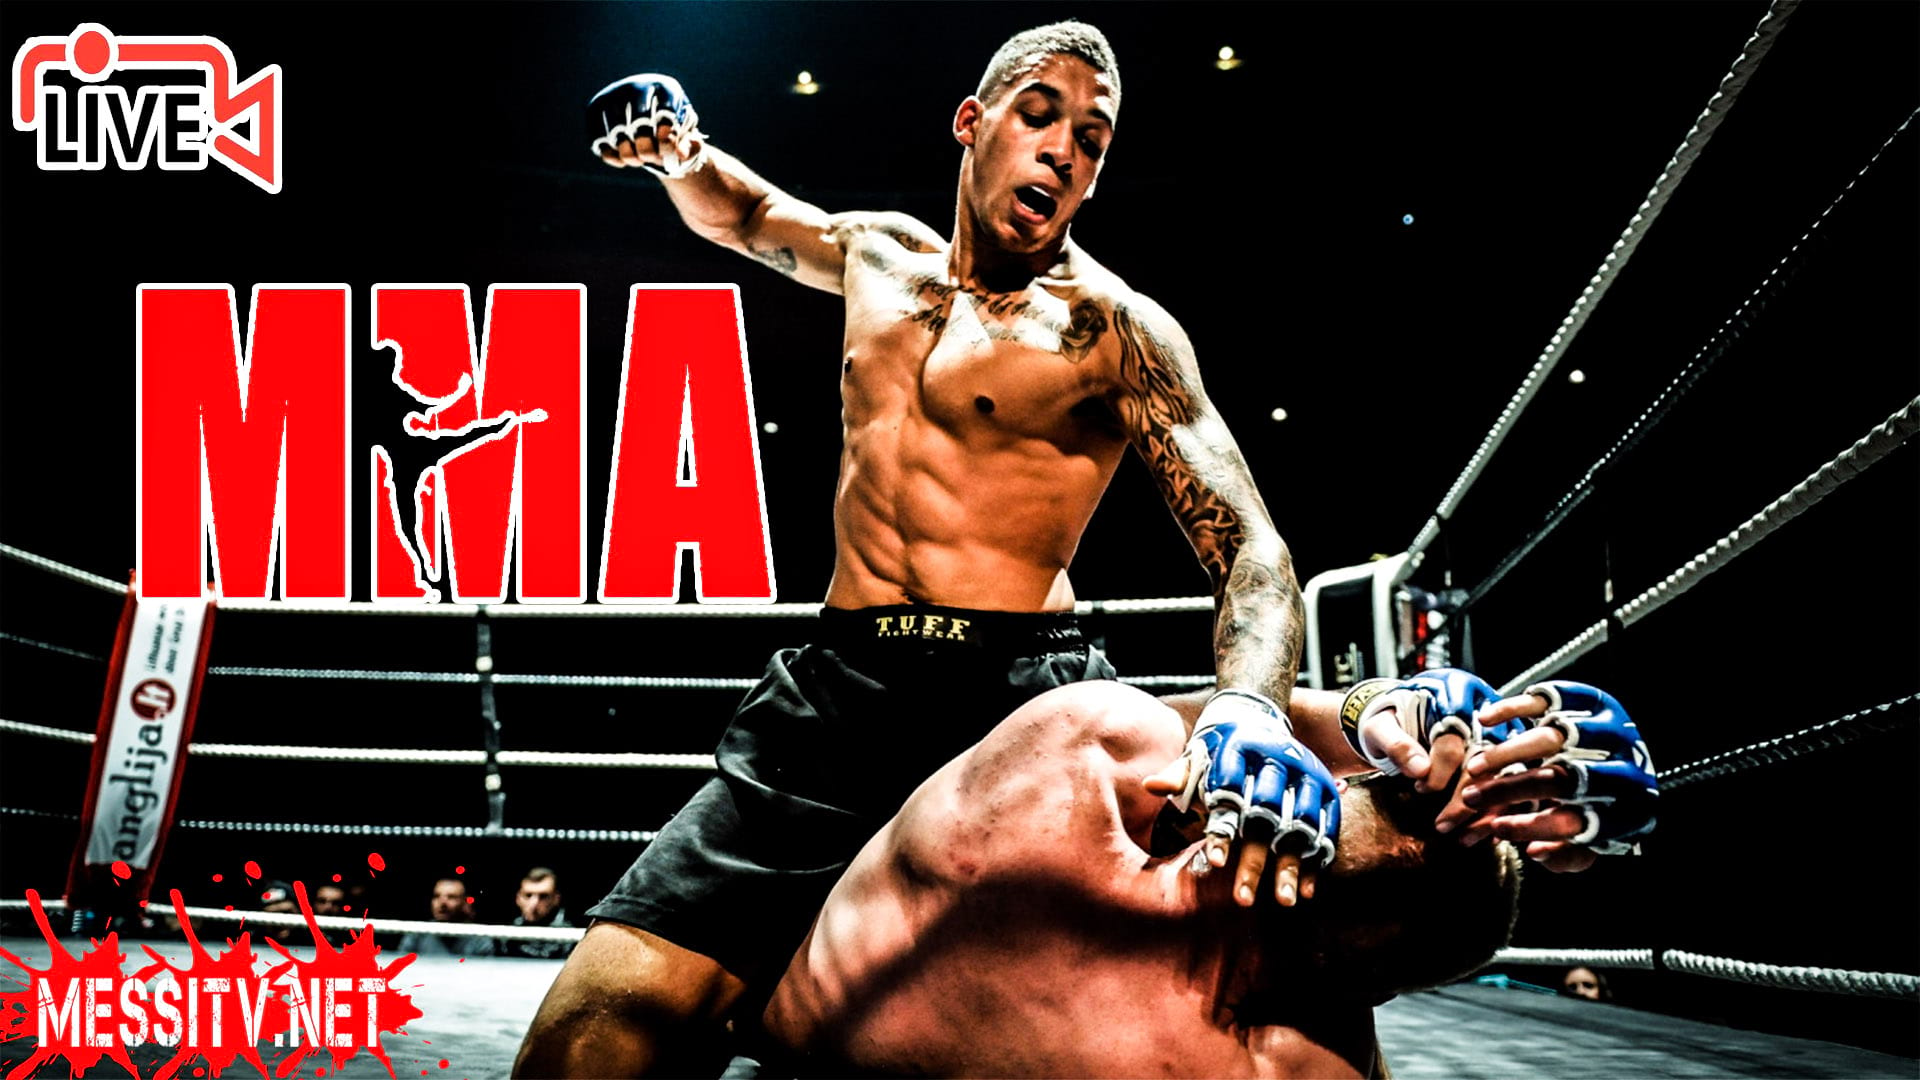 Watch All MMA DWCS Fights Games Live Stream Online [Full HD + 4K + Support Mobile], Watch Dana White's Contender Series (MMA DWCS) Live Online, Watch MMA DWCS Live online, watch MMA live online, Watch Dana White's Contender Series (MMA DWCS) Live Online, regarder MMA DWCS online. ver MMA DWCS en vivo, MMA DWCS Fight Pass, MMA DWCS Highlights & FULL Fight Replay HD, Watch Combat Fights Live Online, MMA Fighting, MMA DWCS Fighting, DWCS, Bellator, Watch PFL Fights Live, PFL Playoffs: Featherweights & Light Heavyweights, Watch PFL Professional Fighters League Live, Mixed Martial Arts, Watch MMA Bellator Live online, Dana White's Contender Series (MMA DWCS)